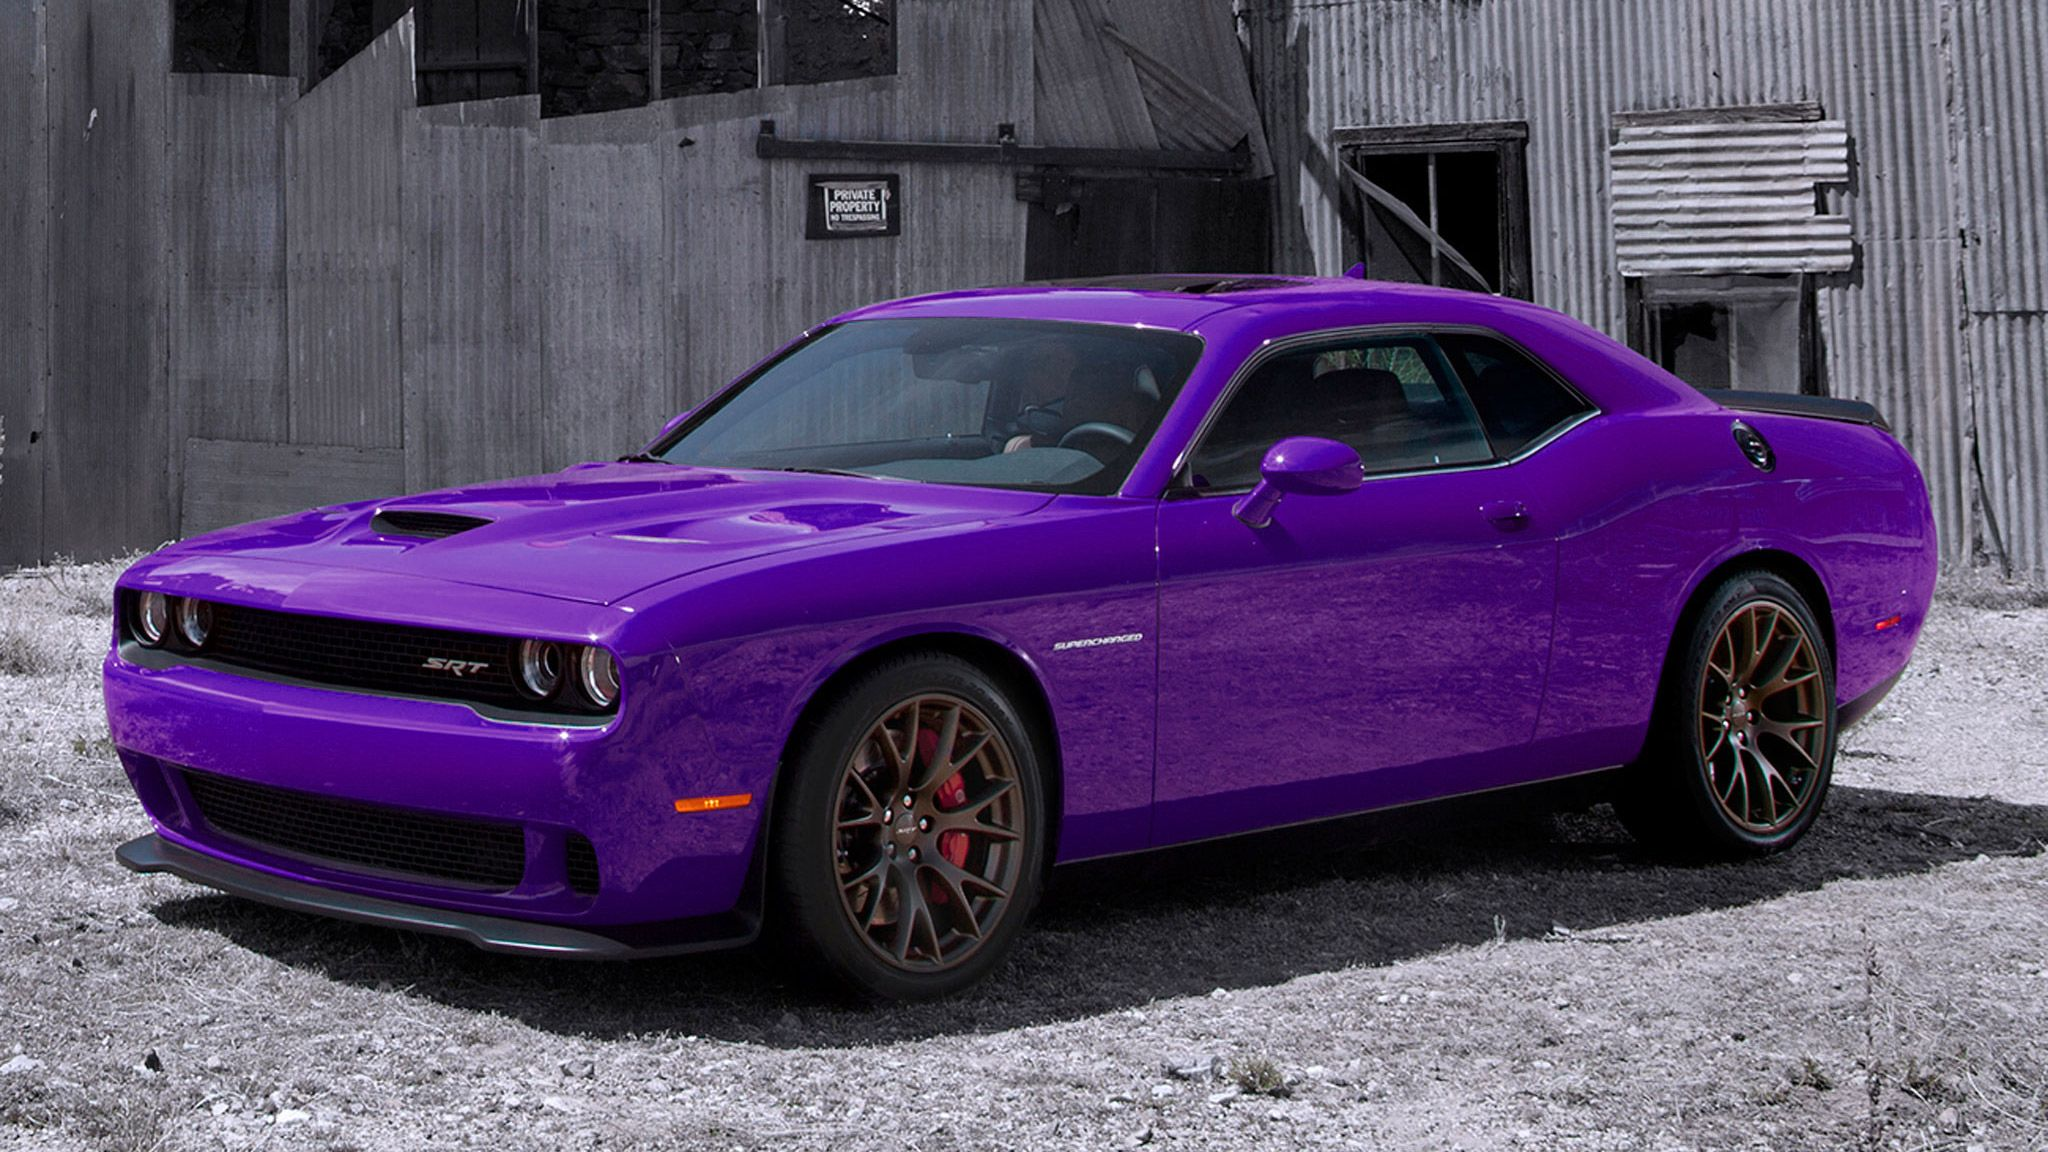 New 2014 dodge charger srt8 automotive photo picture desktop cars pinterest 2014 dodge charger srt8 2014 dodge charger and dodge charger srt8